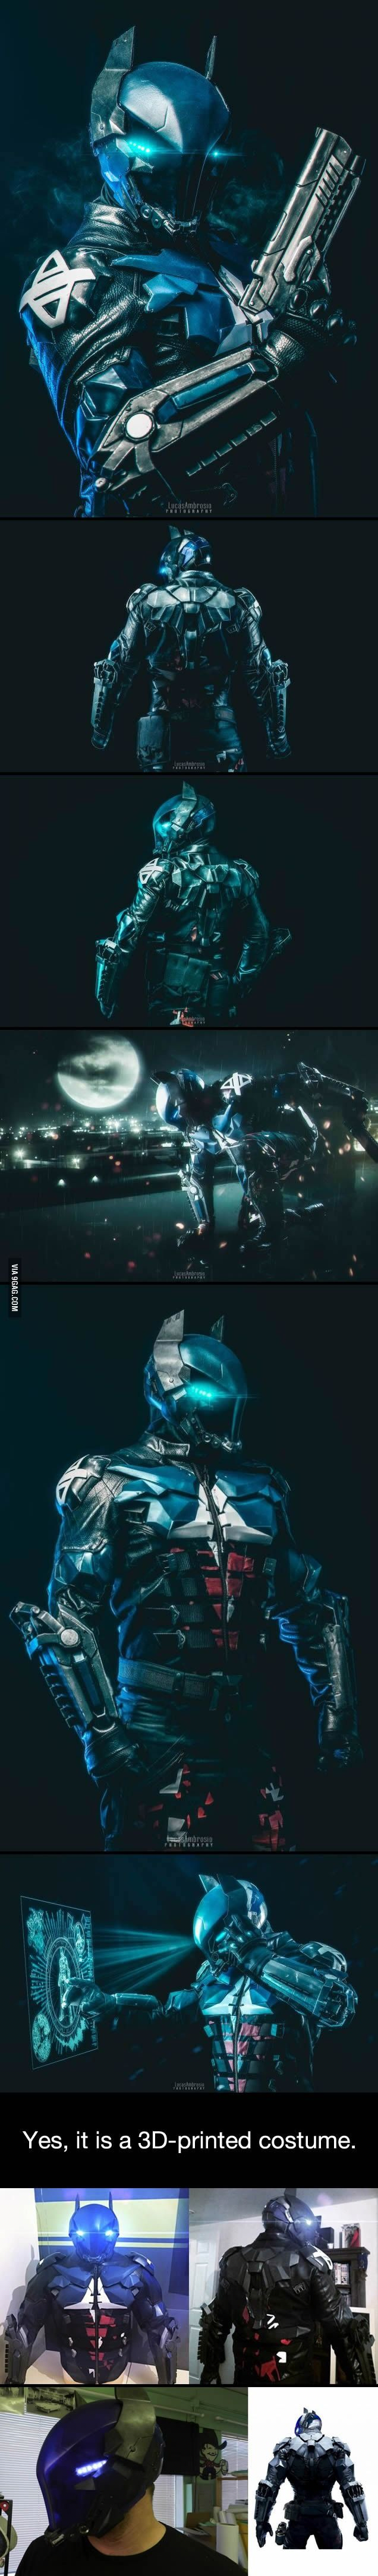 This 3D-printed Arkham Knight costume is just too badass - 9GAG